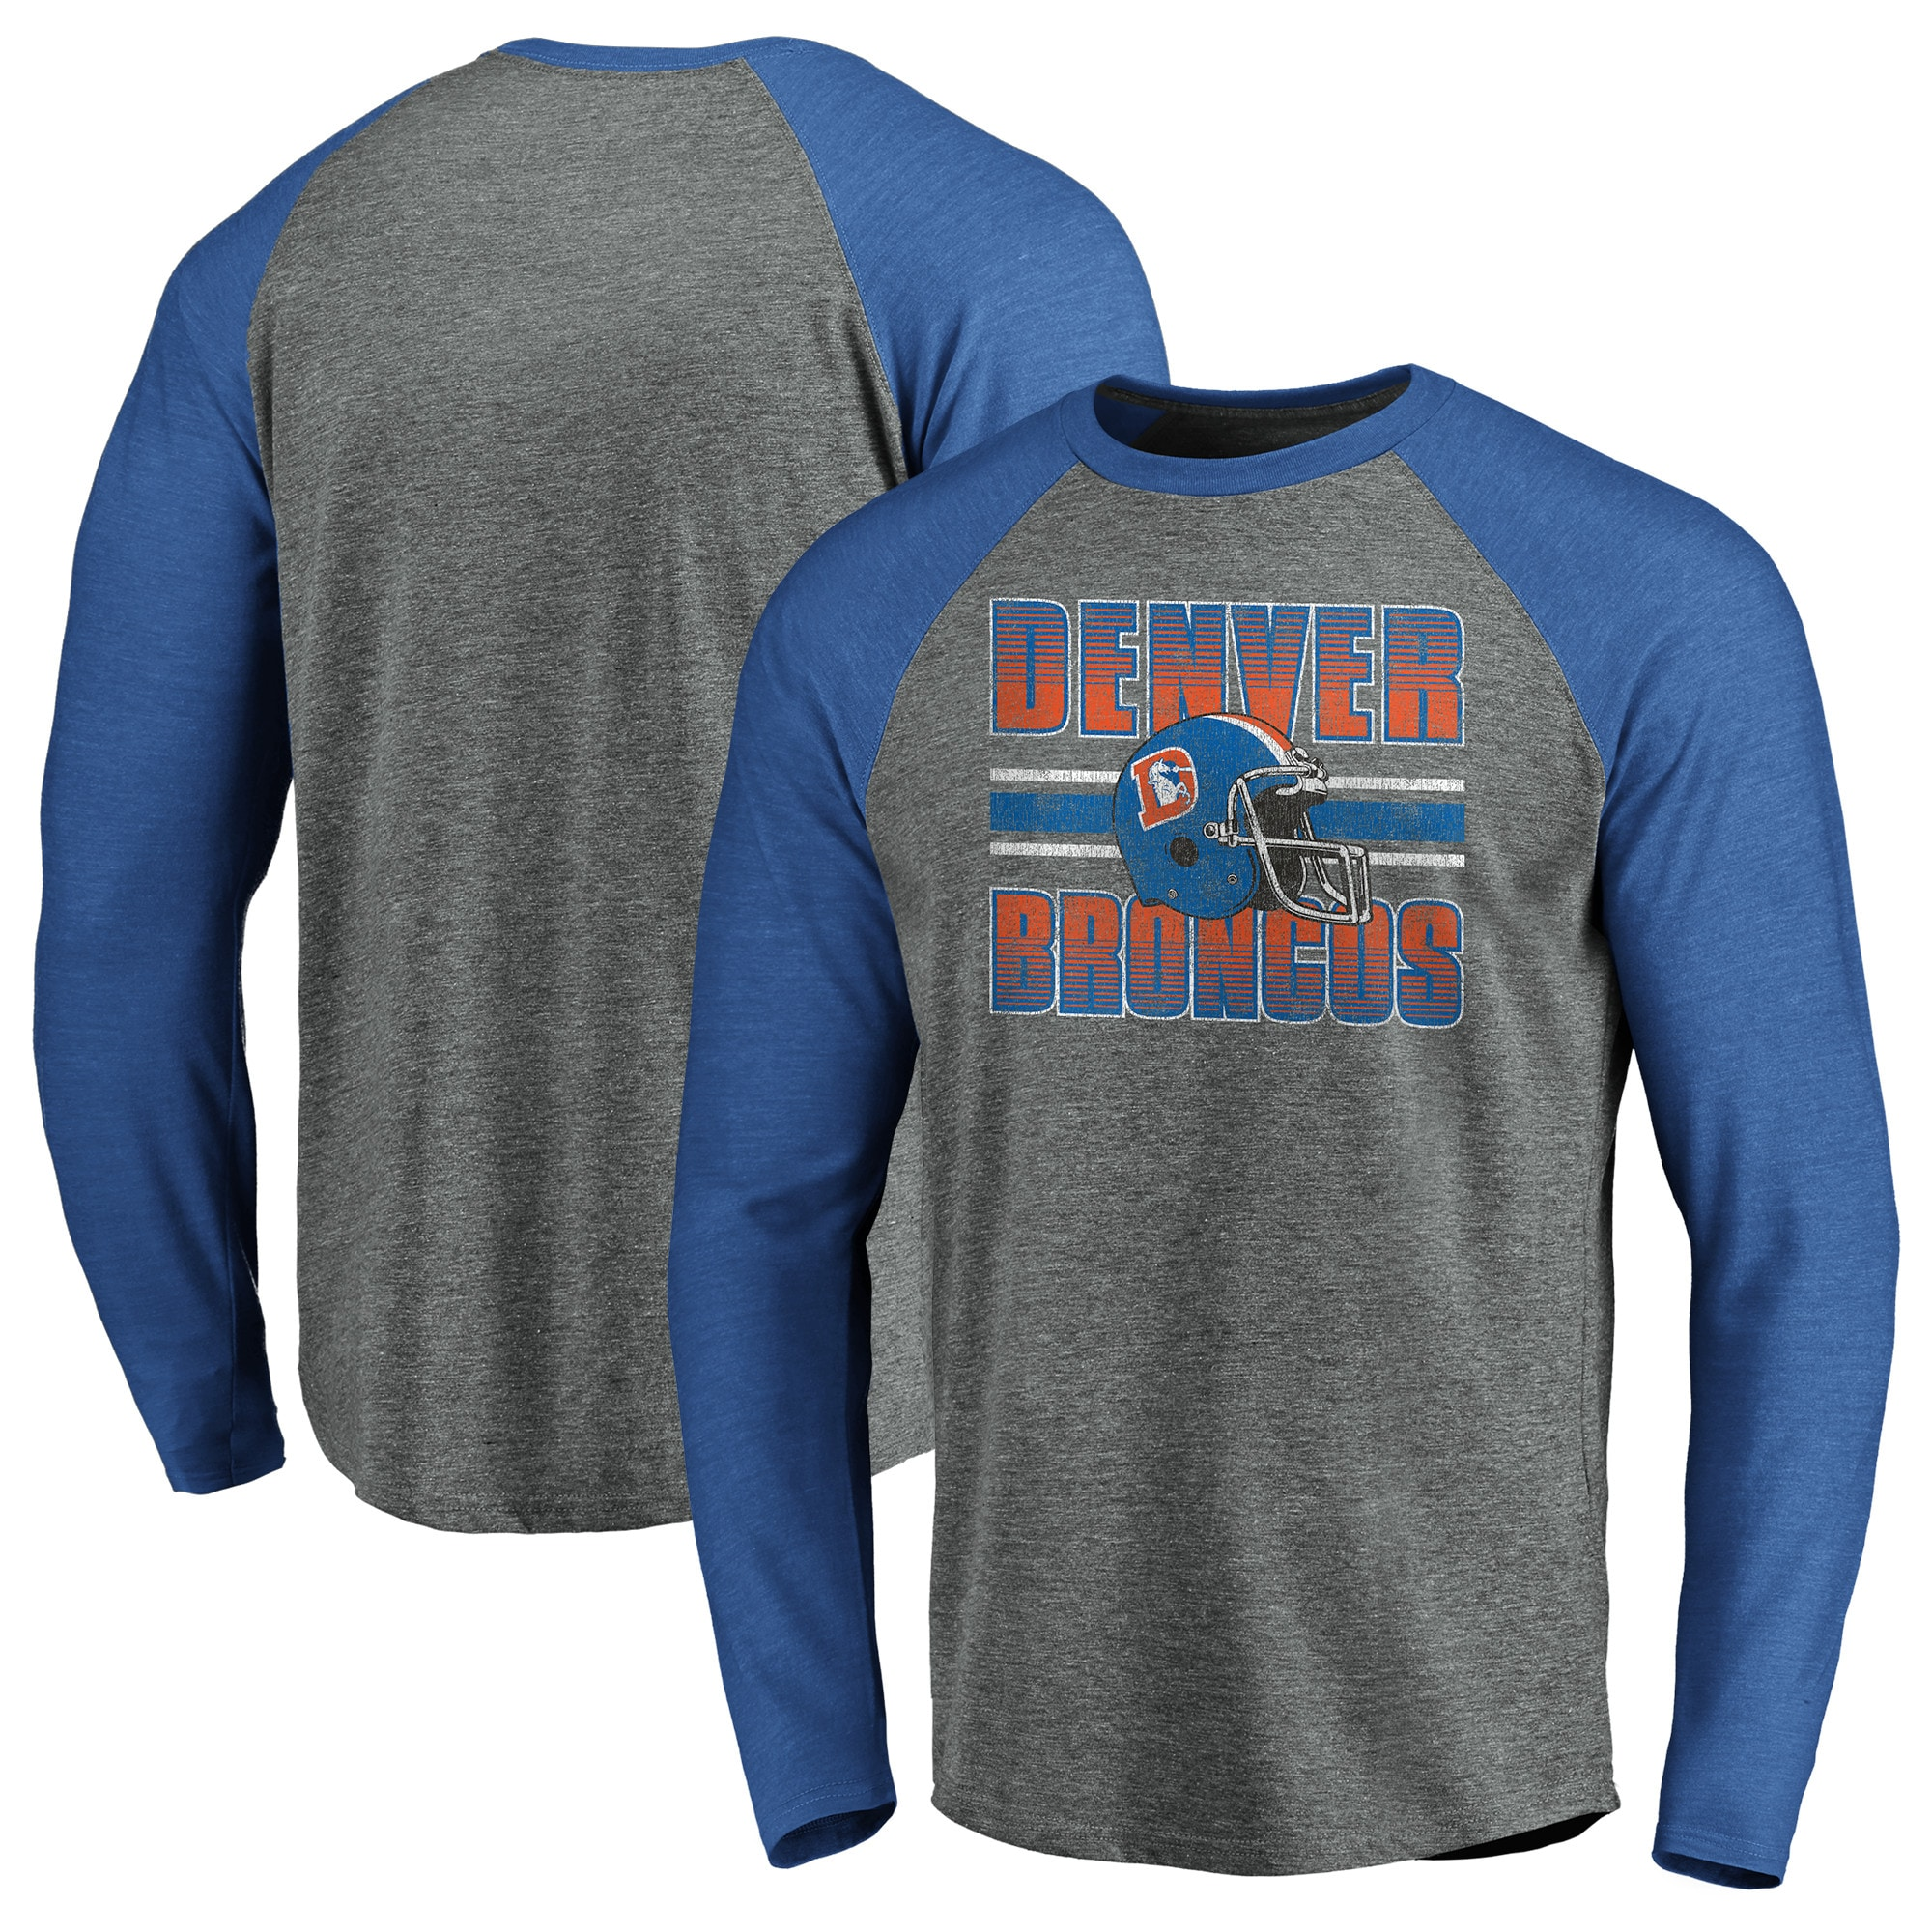 Denver Broncos NFL Pro Line by Fanatics Branded True Classics Stripe Helmet Throwback Tri-Blend Raglan Long Sleeve T-Shirt - Gray/Heathered Royal